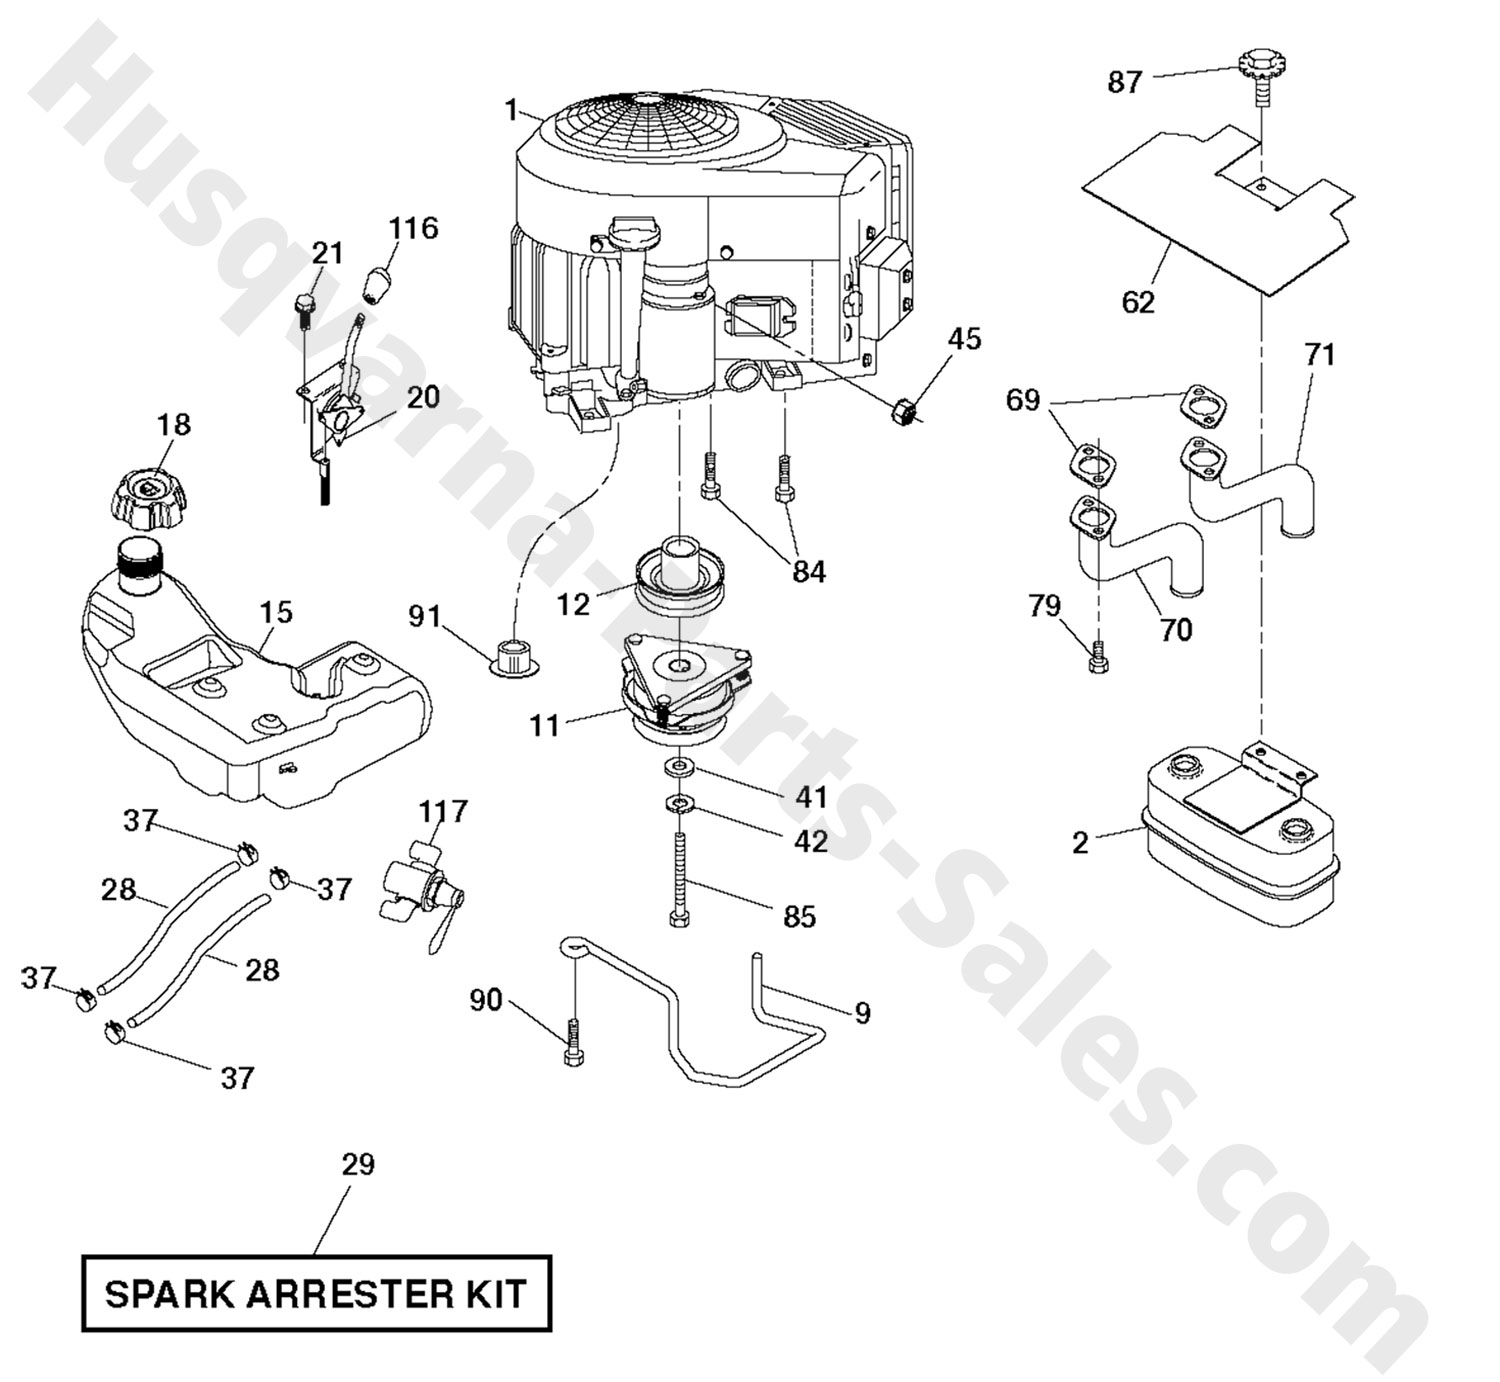 honda 250ex wiring diagram honda recon 250 wiring diagram